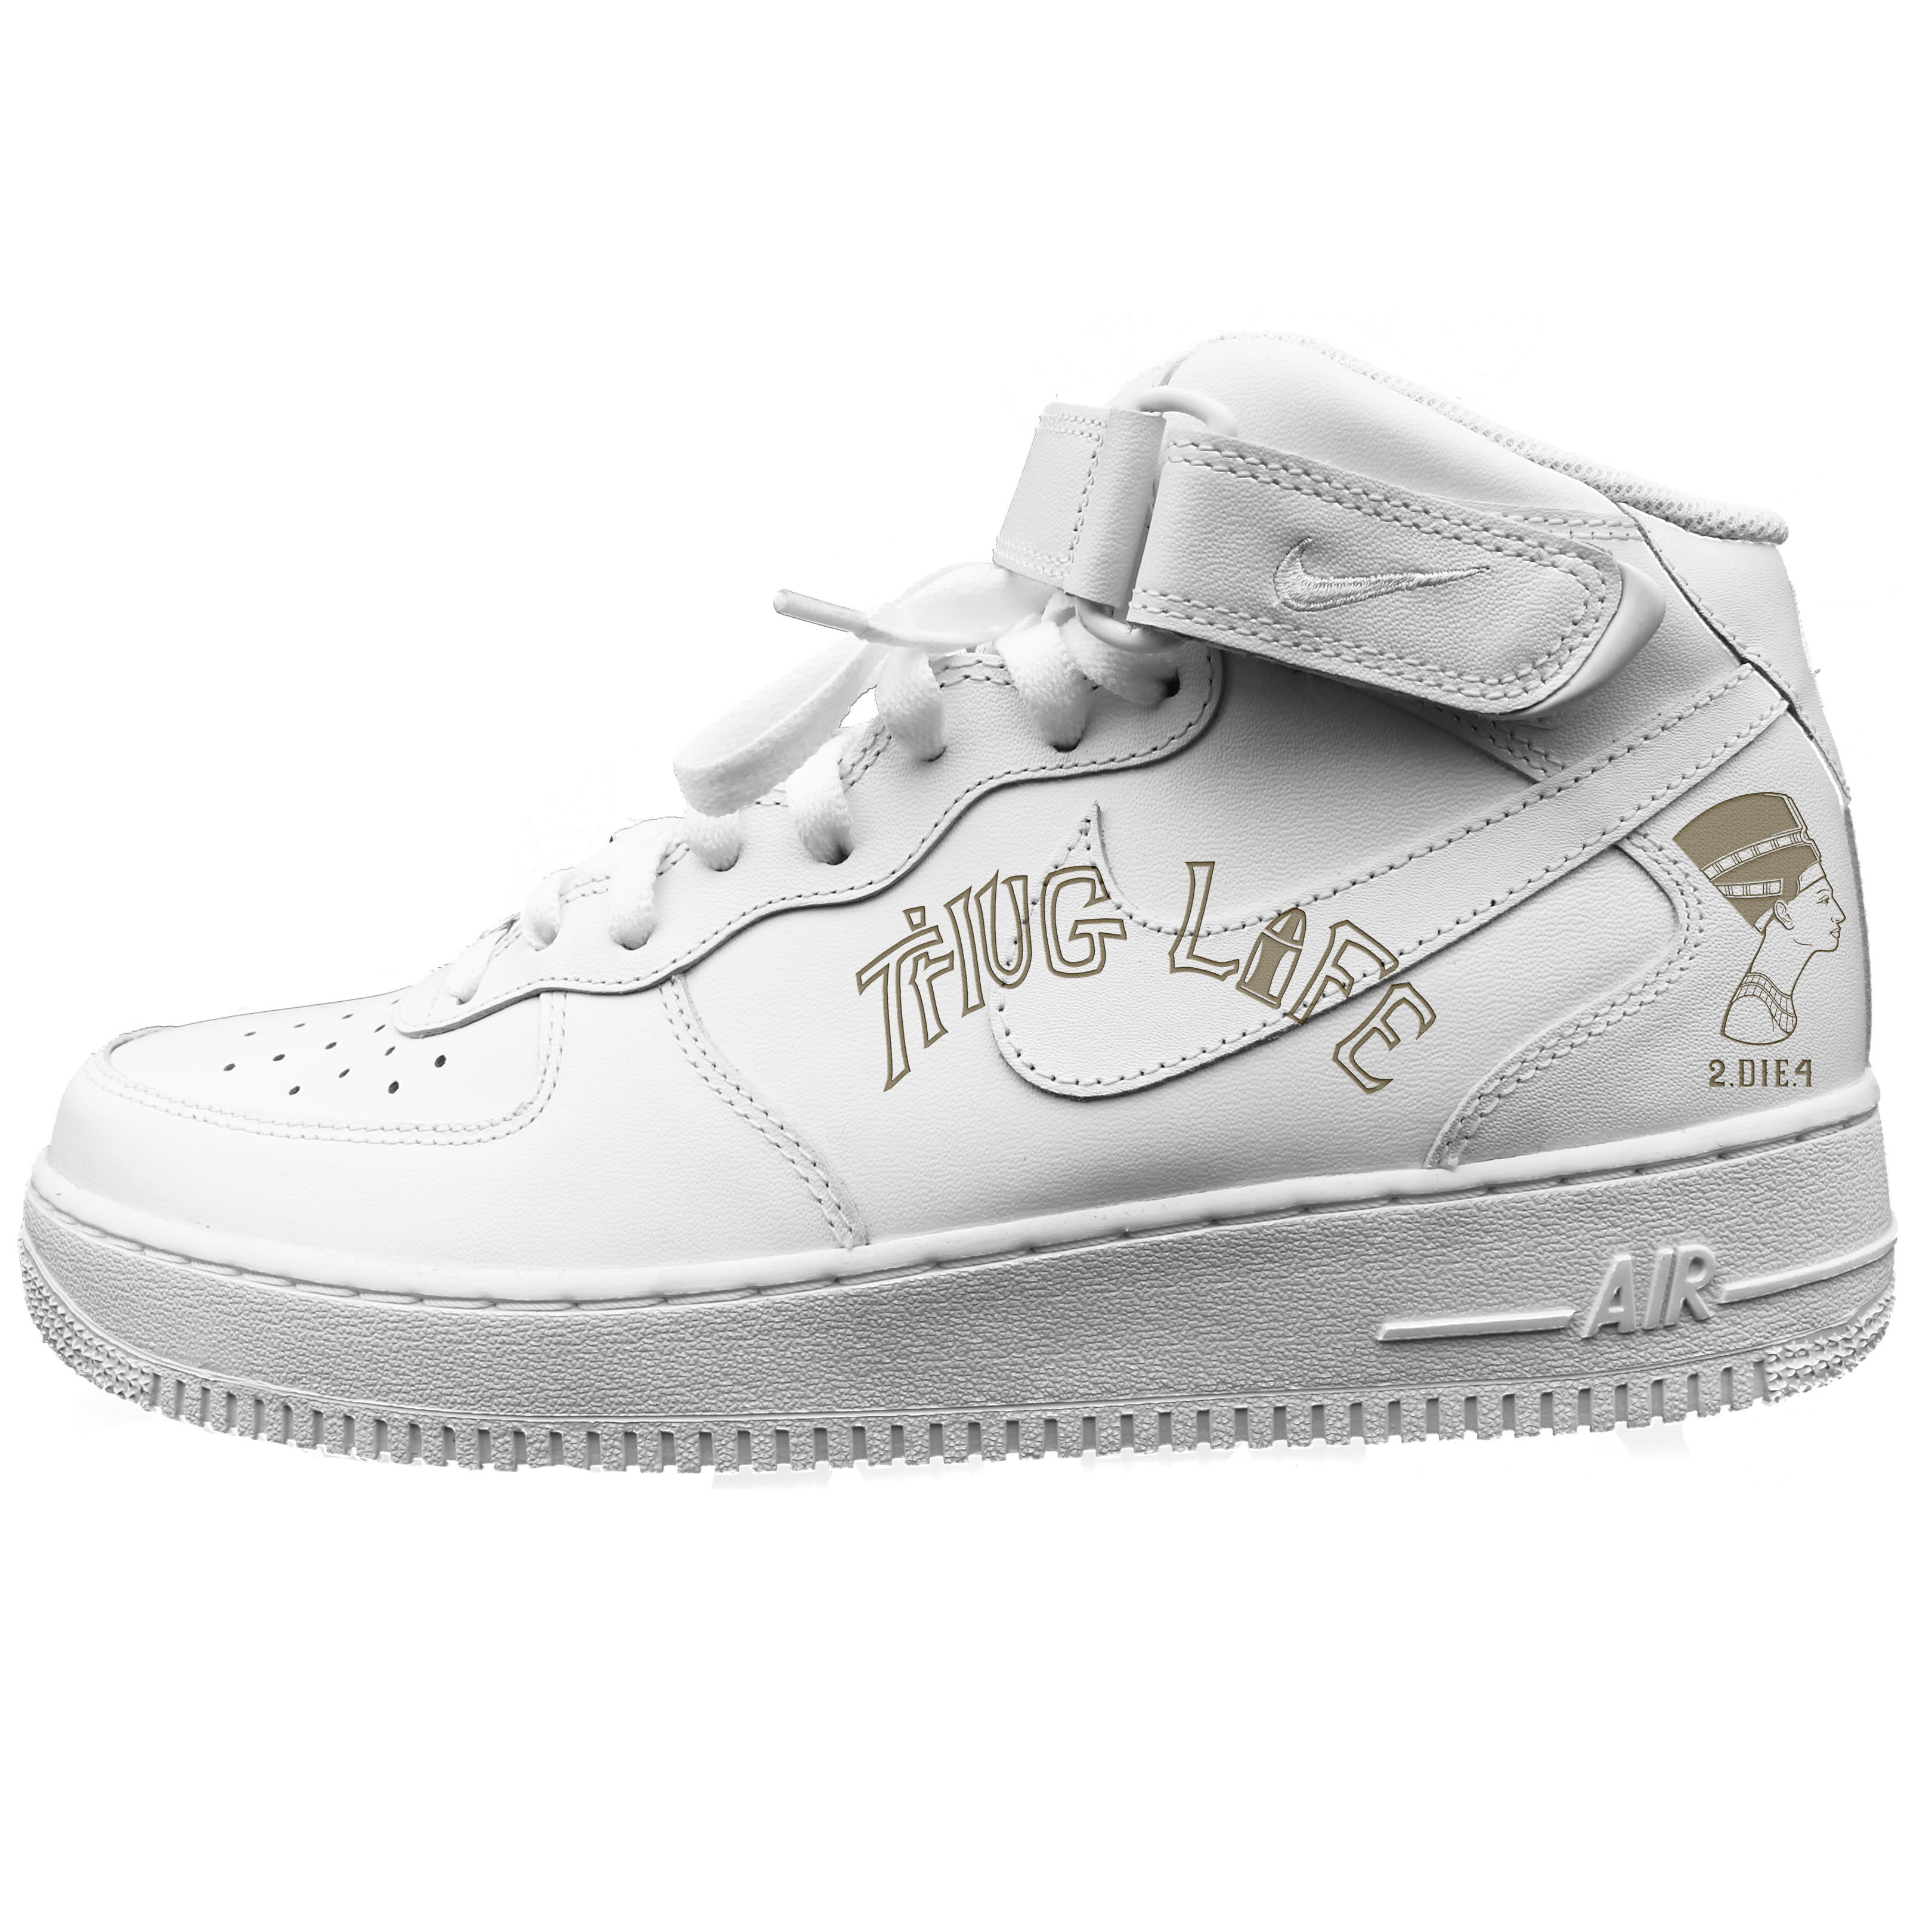 thug life air force 1 mid air force 1 mid